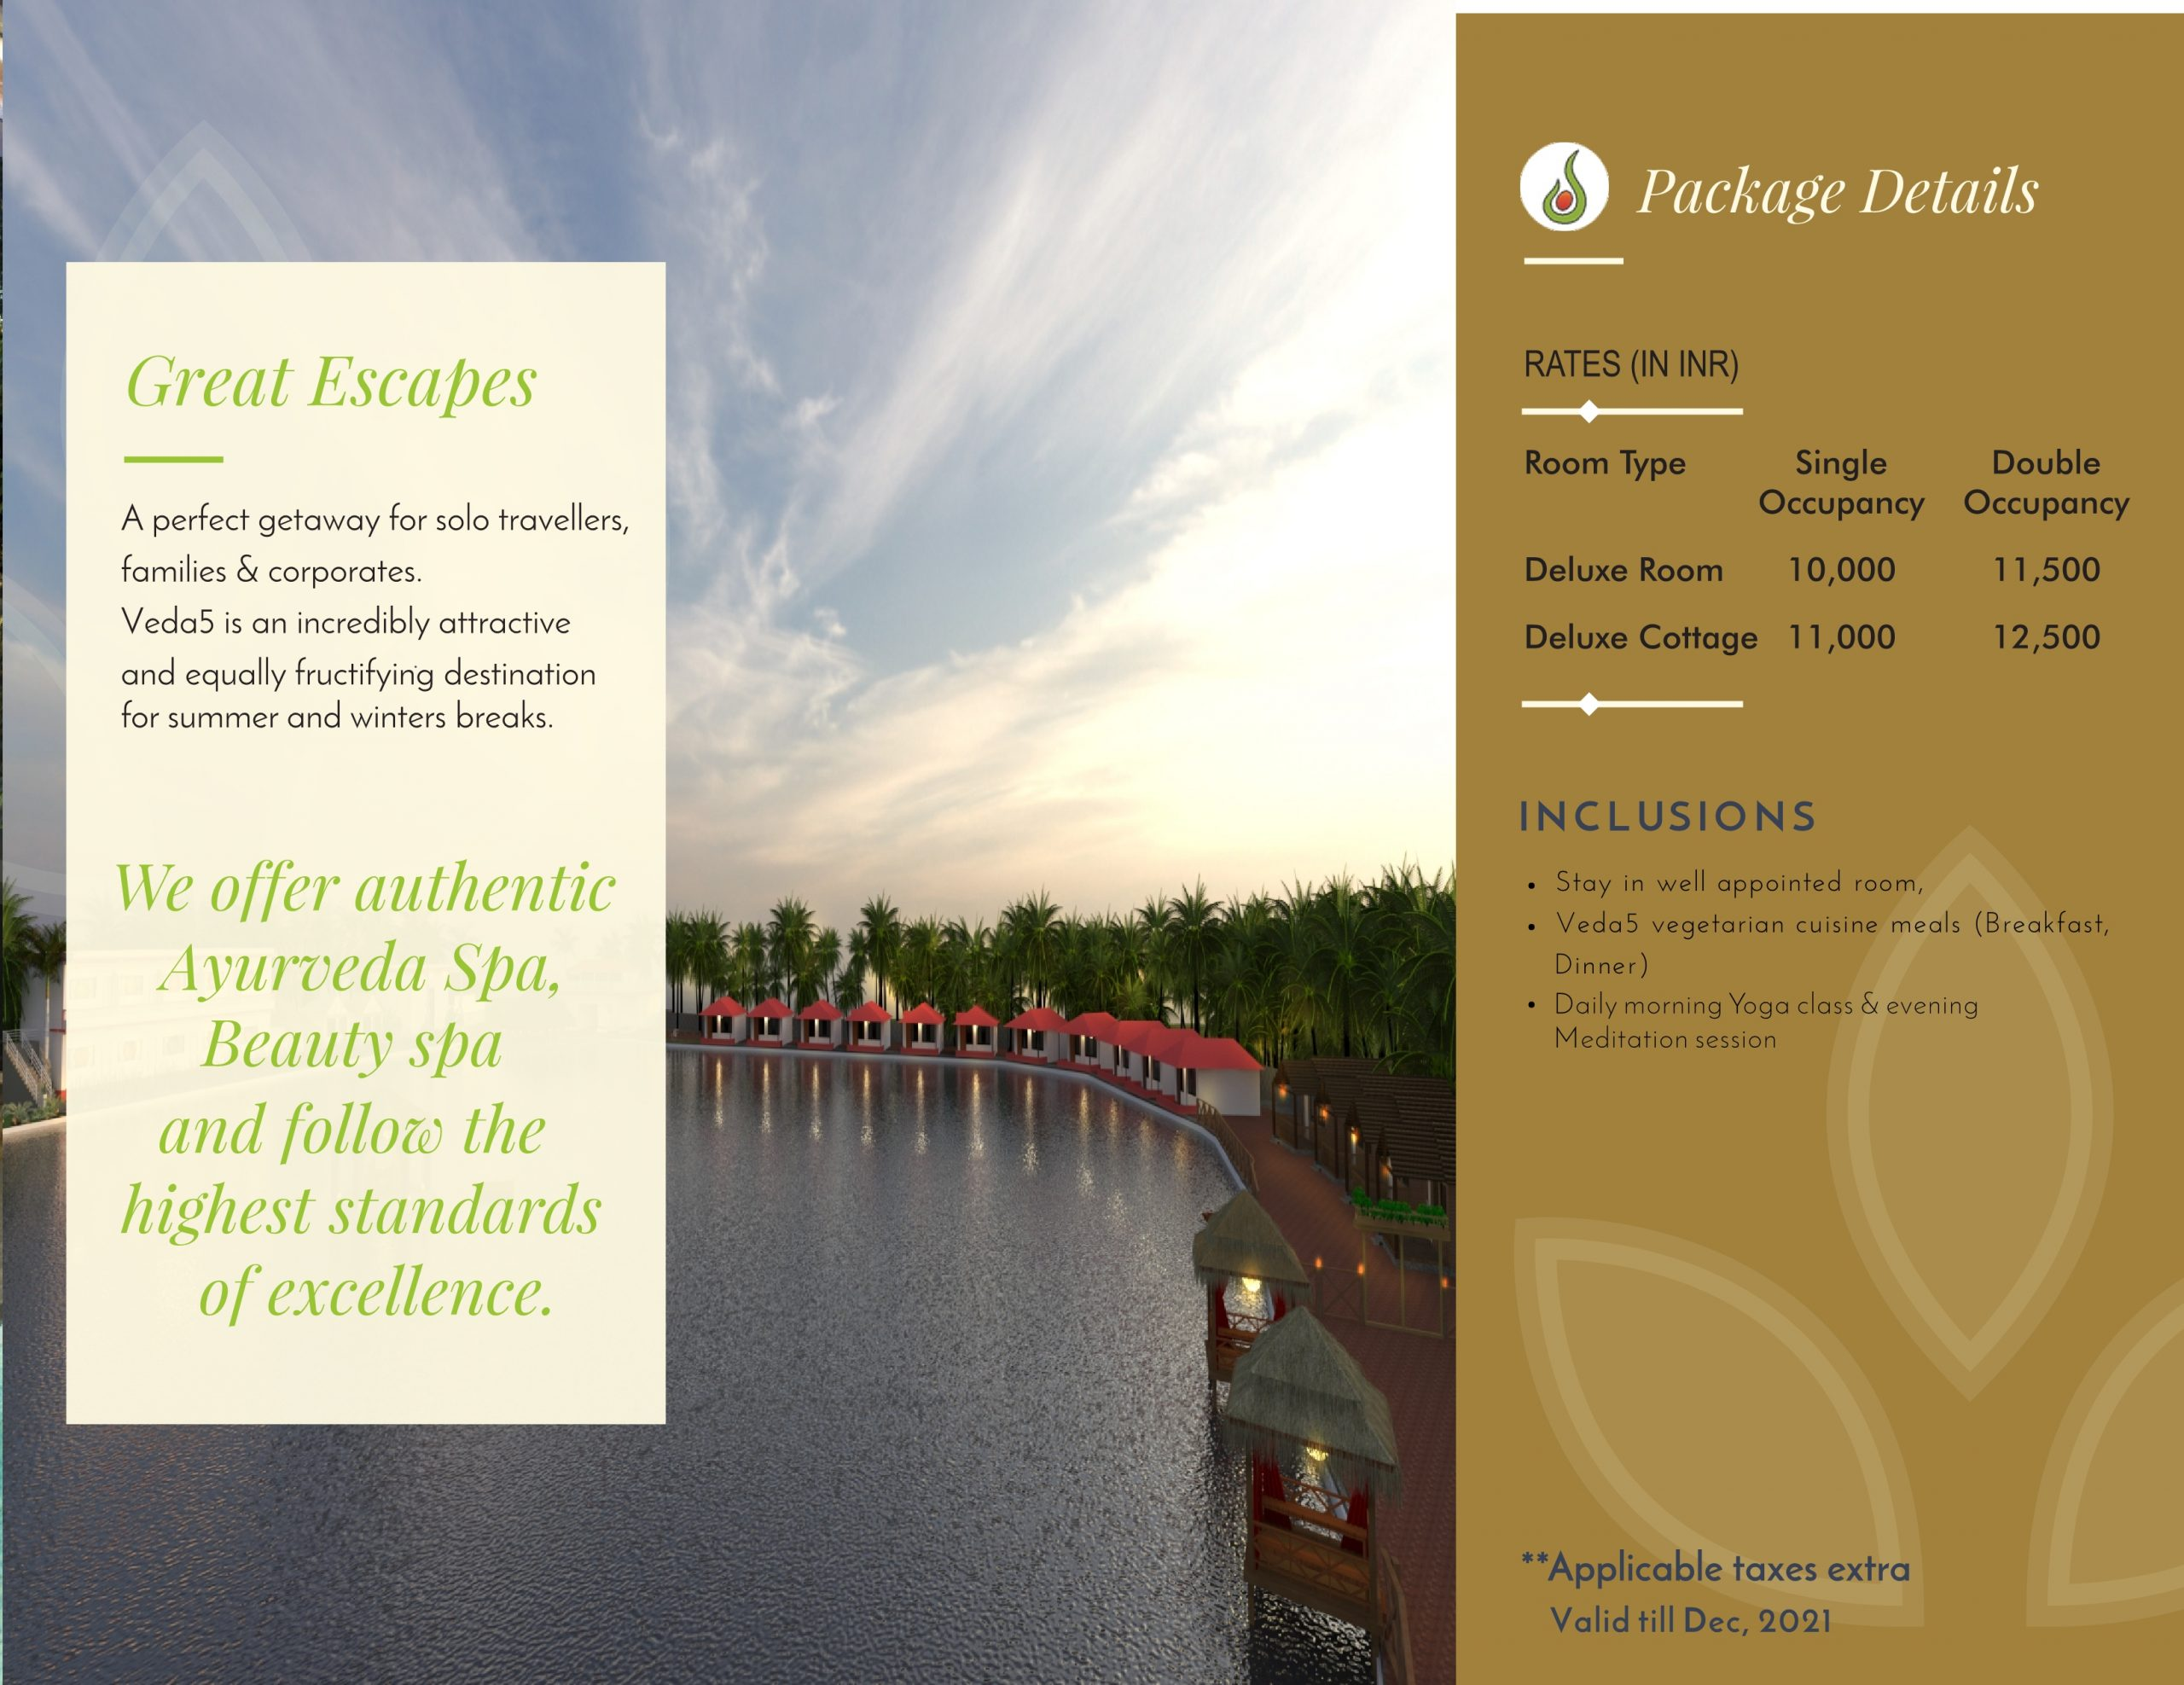 Veda5 Wellness Retreat and Spa in Arambol Goa India Hotel Resort for Vacation and Ayurveda Spa and Beauty Spa and Yoga